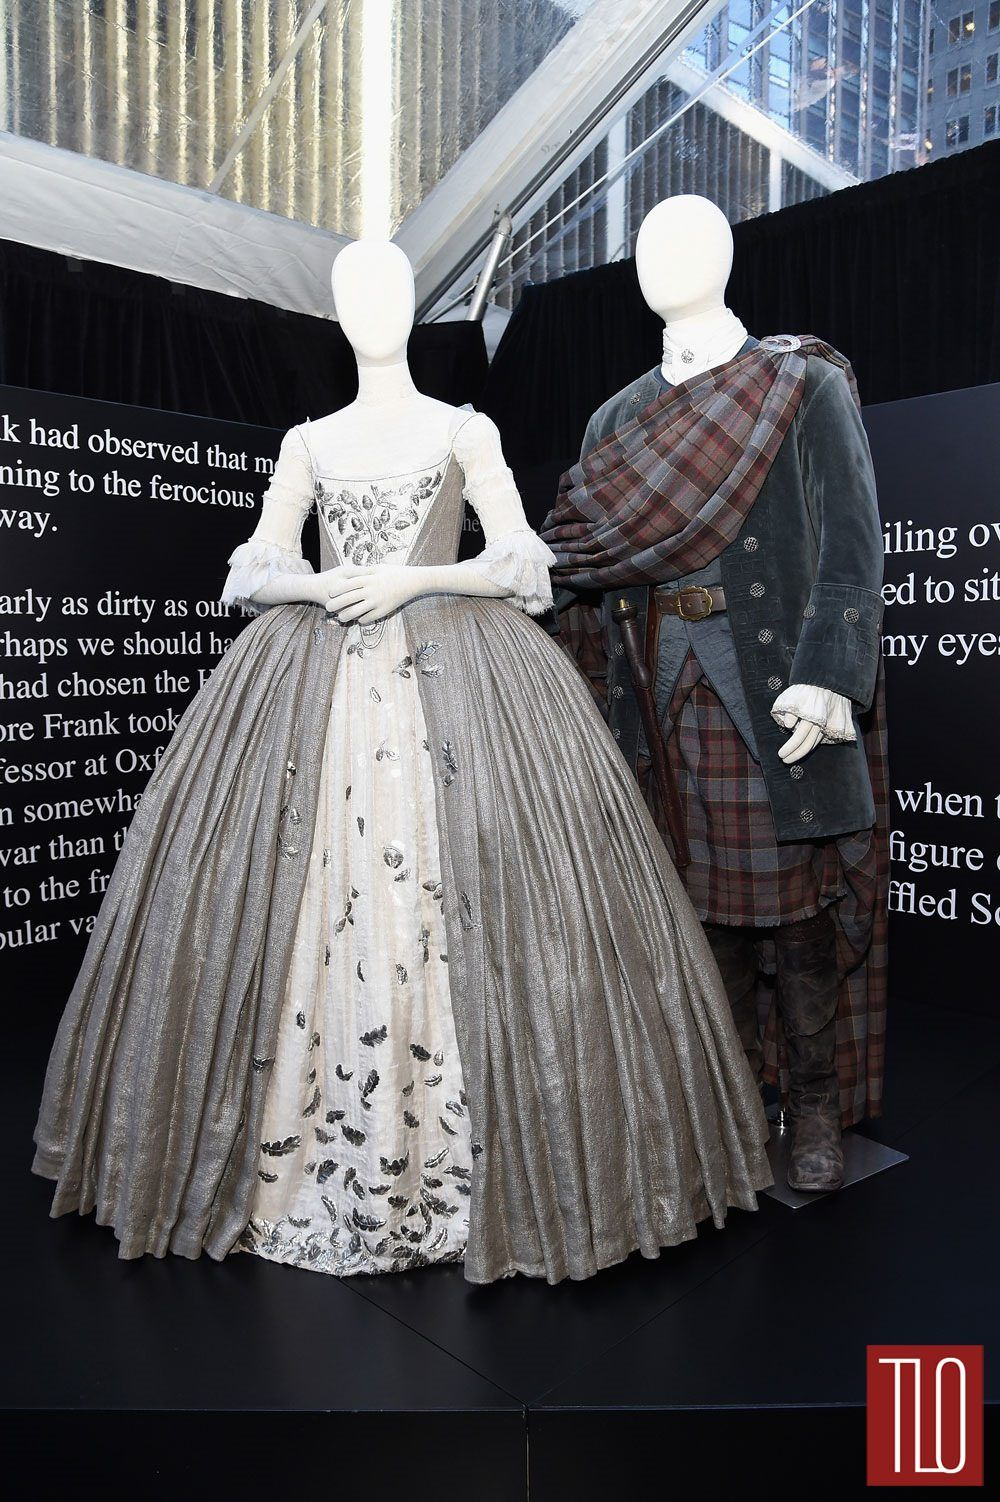 Claires Wedding Dress Is Made Of Silvered Jute Linen With Very Fine Cartridge Pleating The Stomacher And Petticoat A Silk Weave Covered In 45